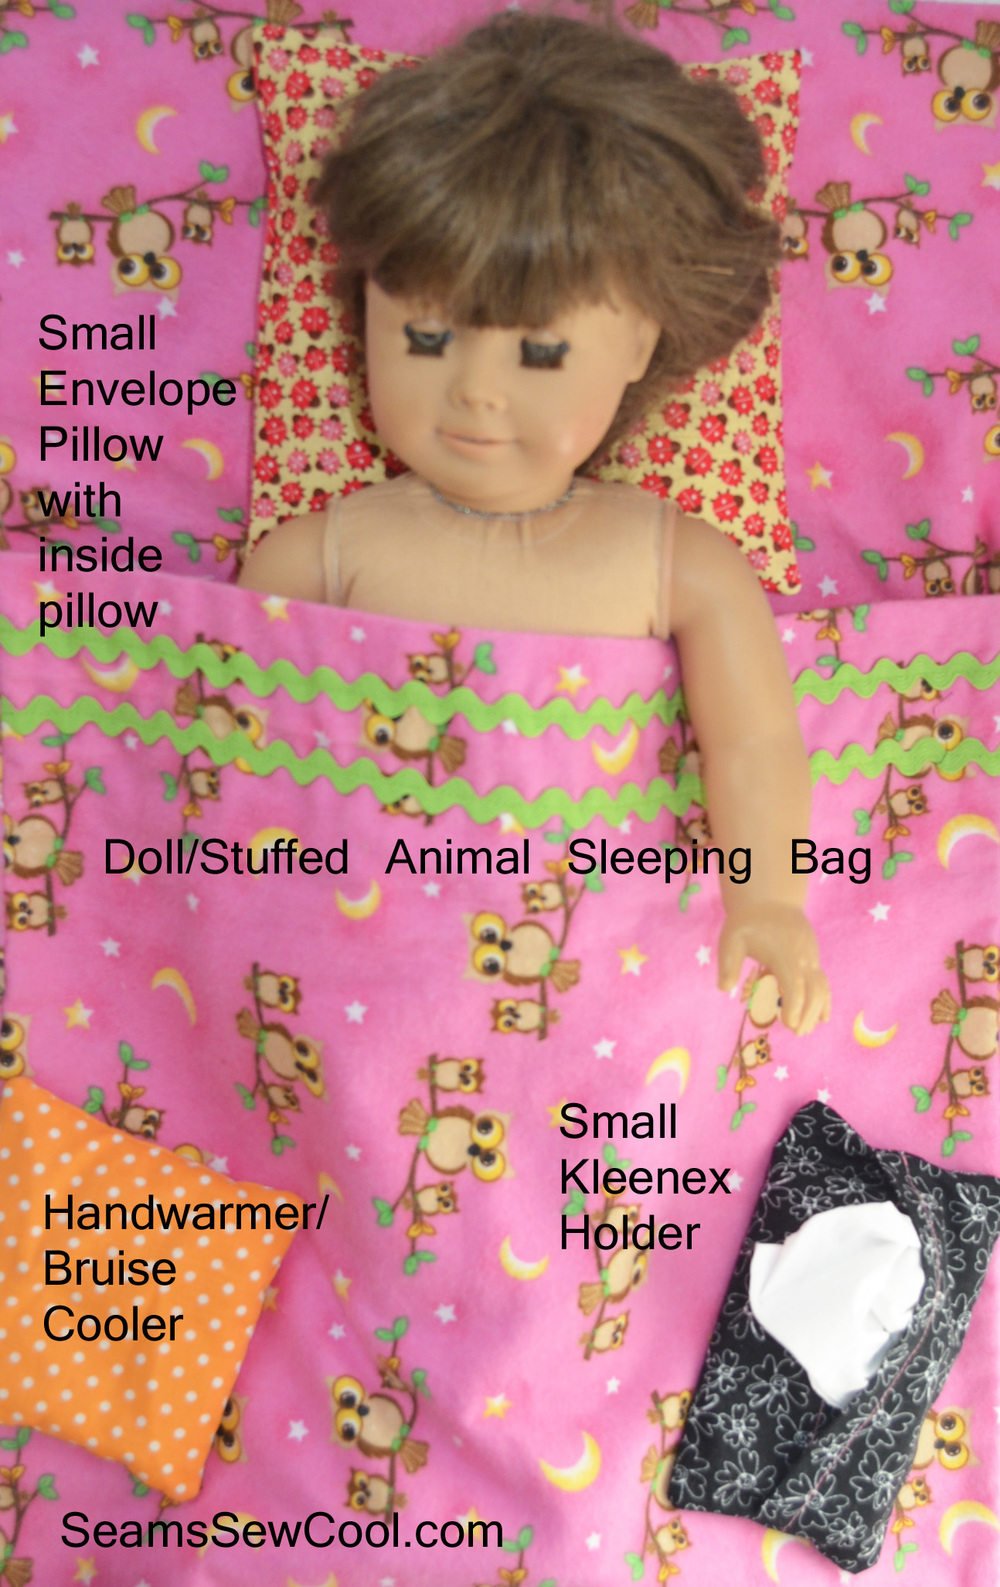 A Sampling of the Seam Sew Cool Sewing Projects in the 100 Series